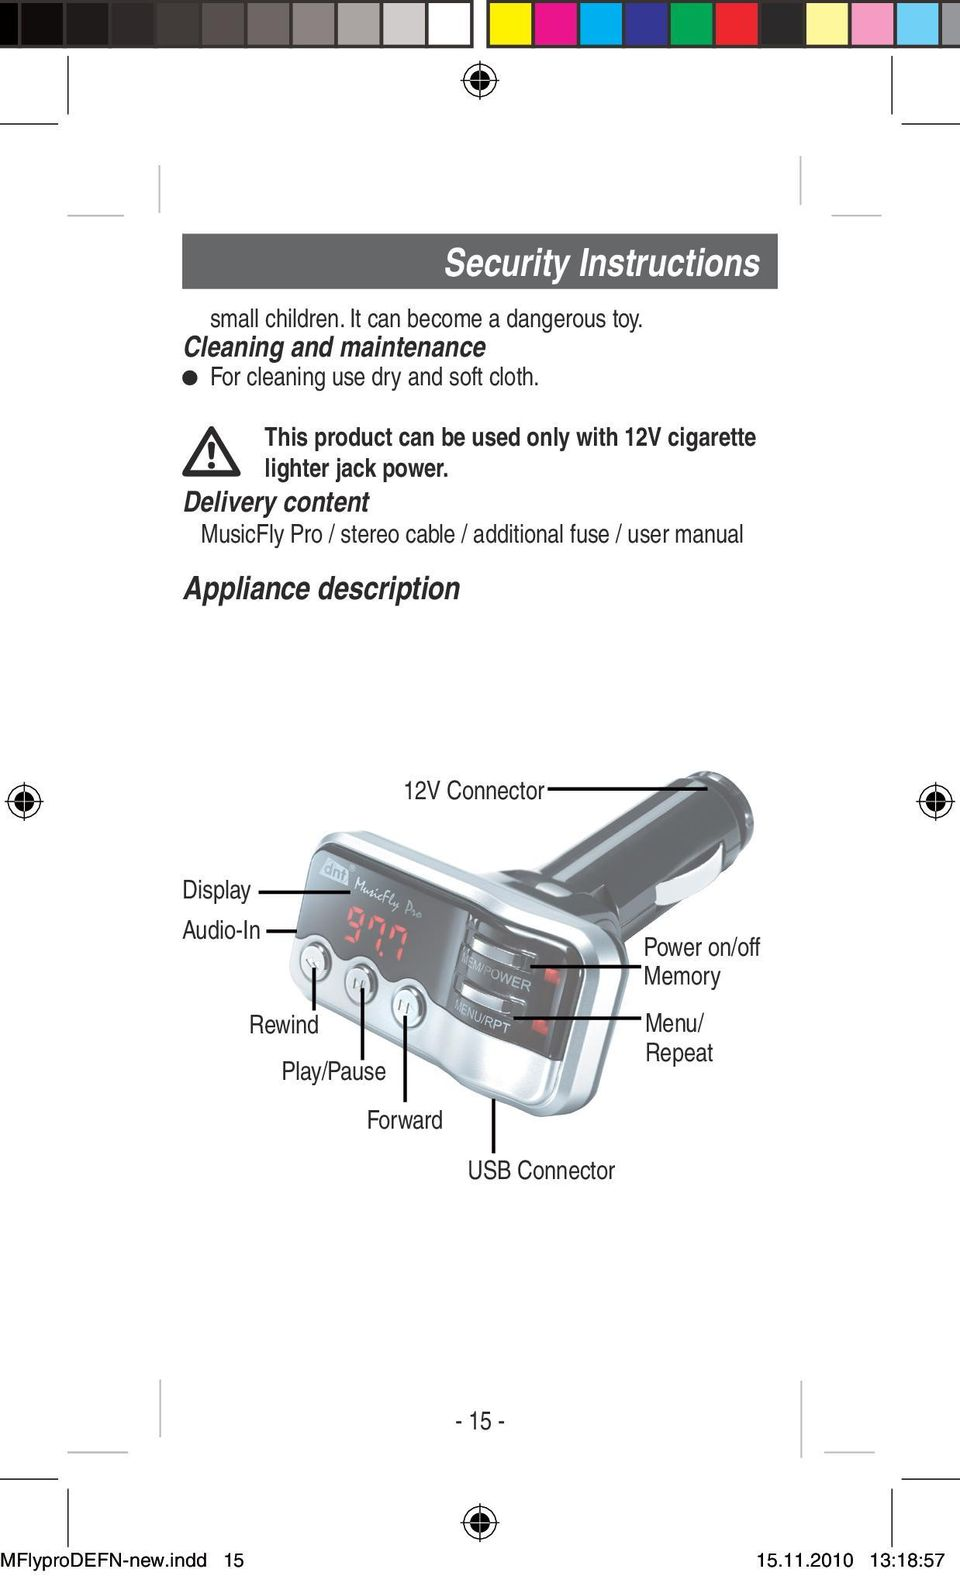 Delivery content MusicFly Pro / stereo cable / additional fuse / user manual Appliance description Security